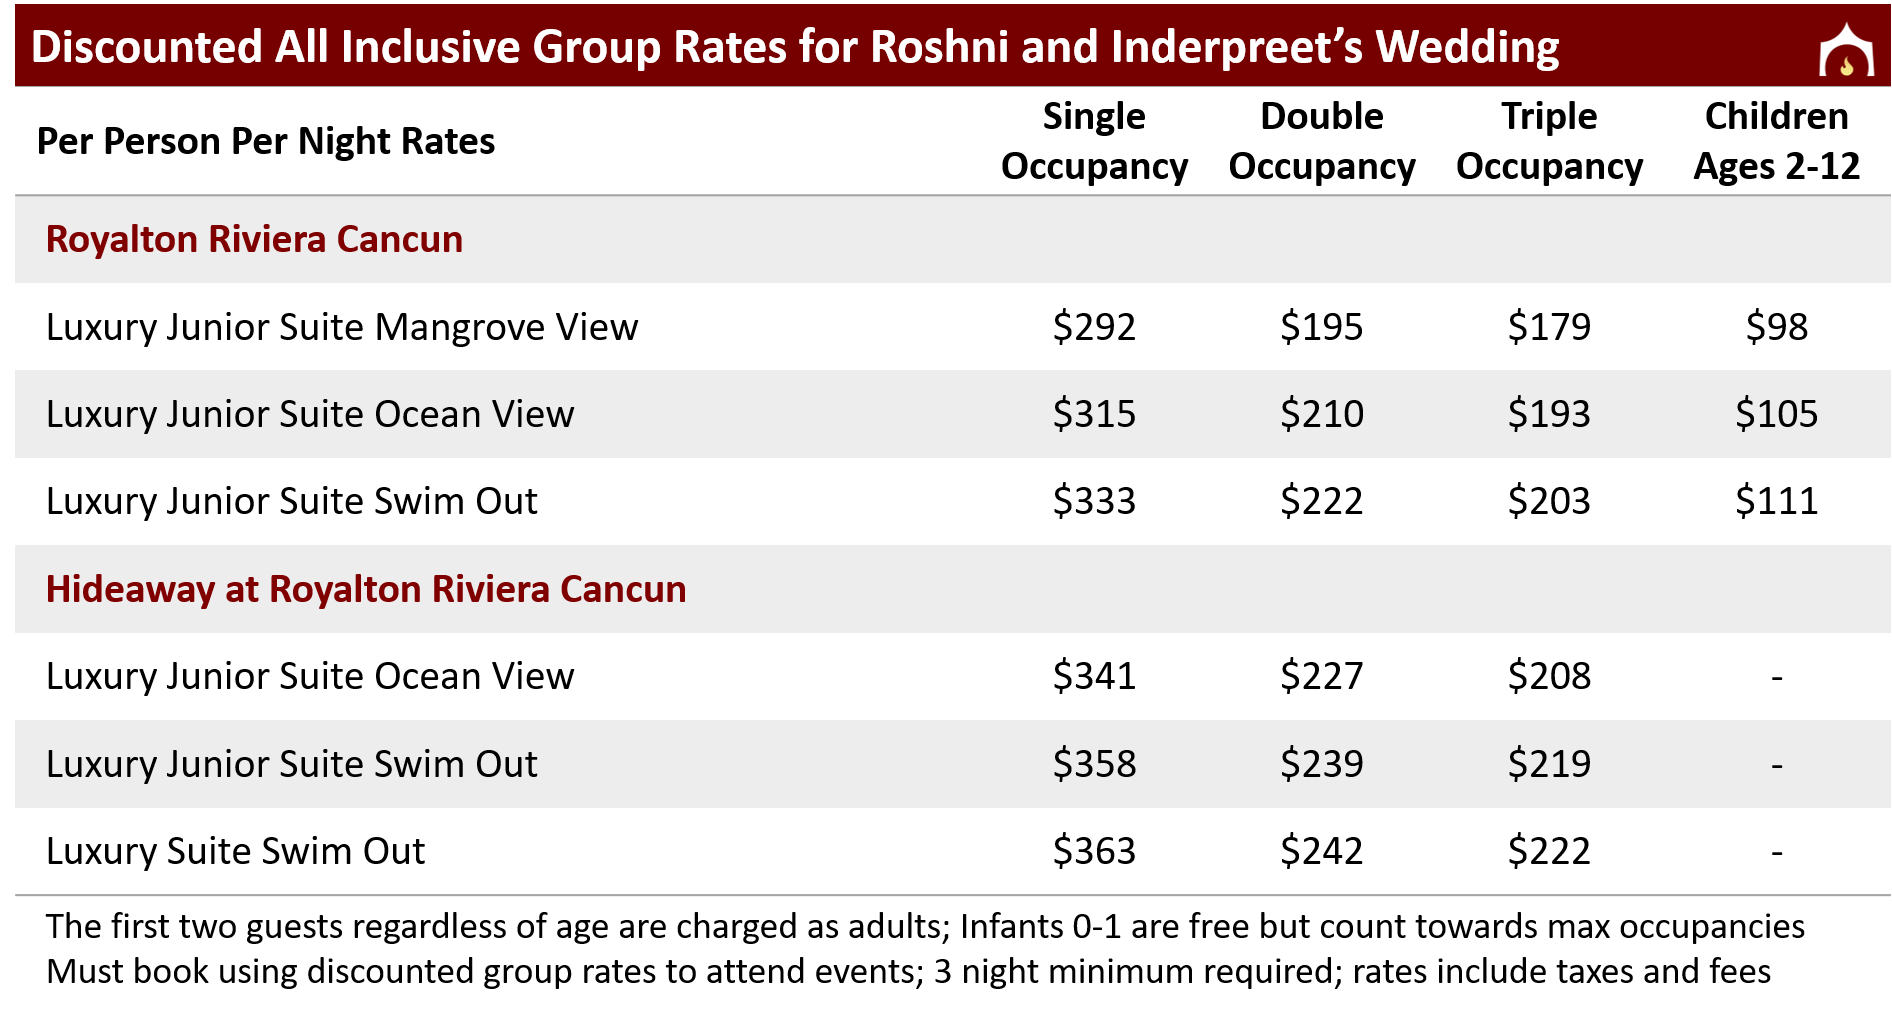 Discounted Group Rates for Roshni and Inderpreet's Wedding v2.png